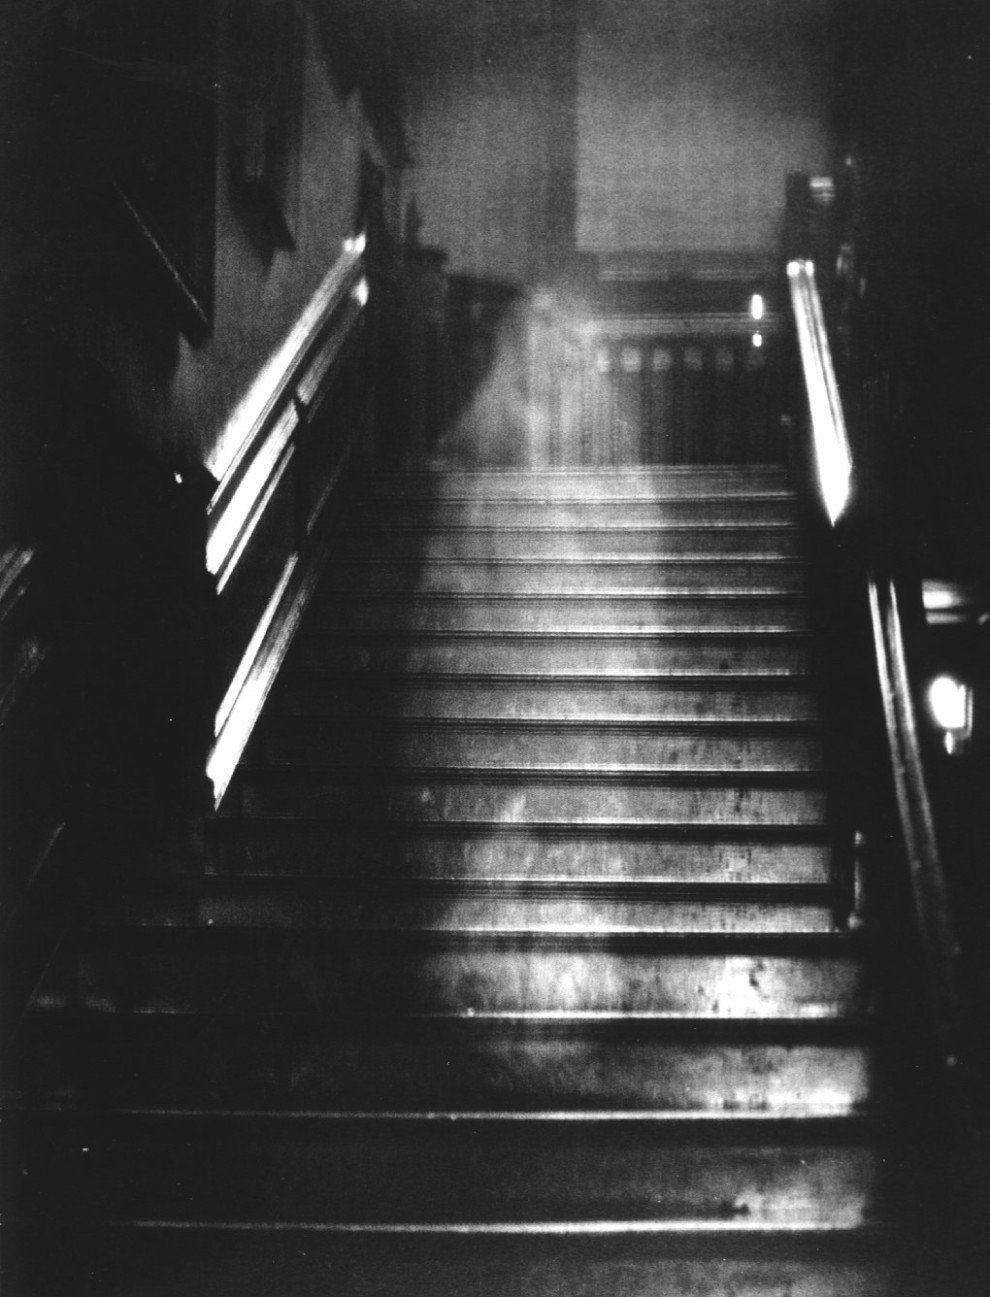 15 fcking creepy ghost stories on wikipedia you probably dont want to read 15 photos 26 15 f*cking creepy ghost stories on Wikipedia you probably dont want to read (15 Photos)